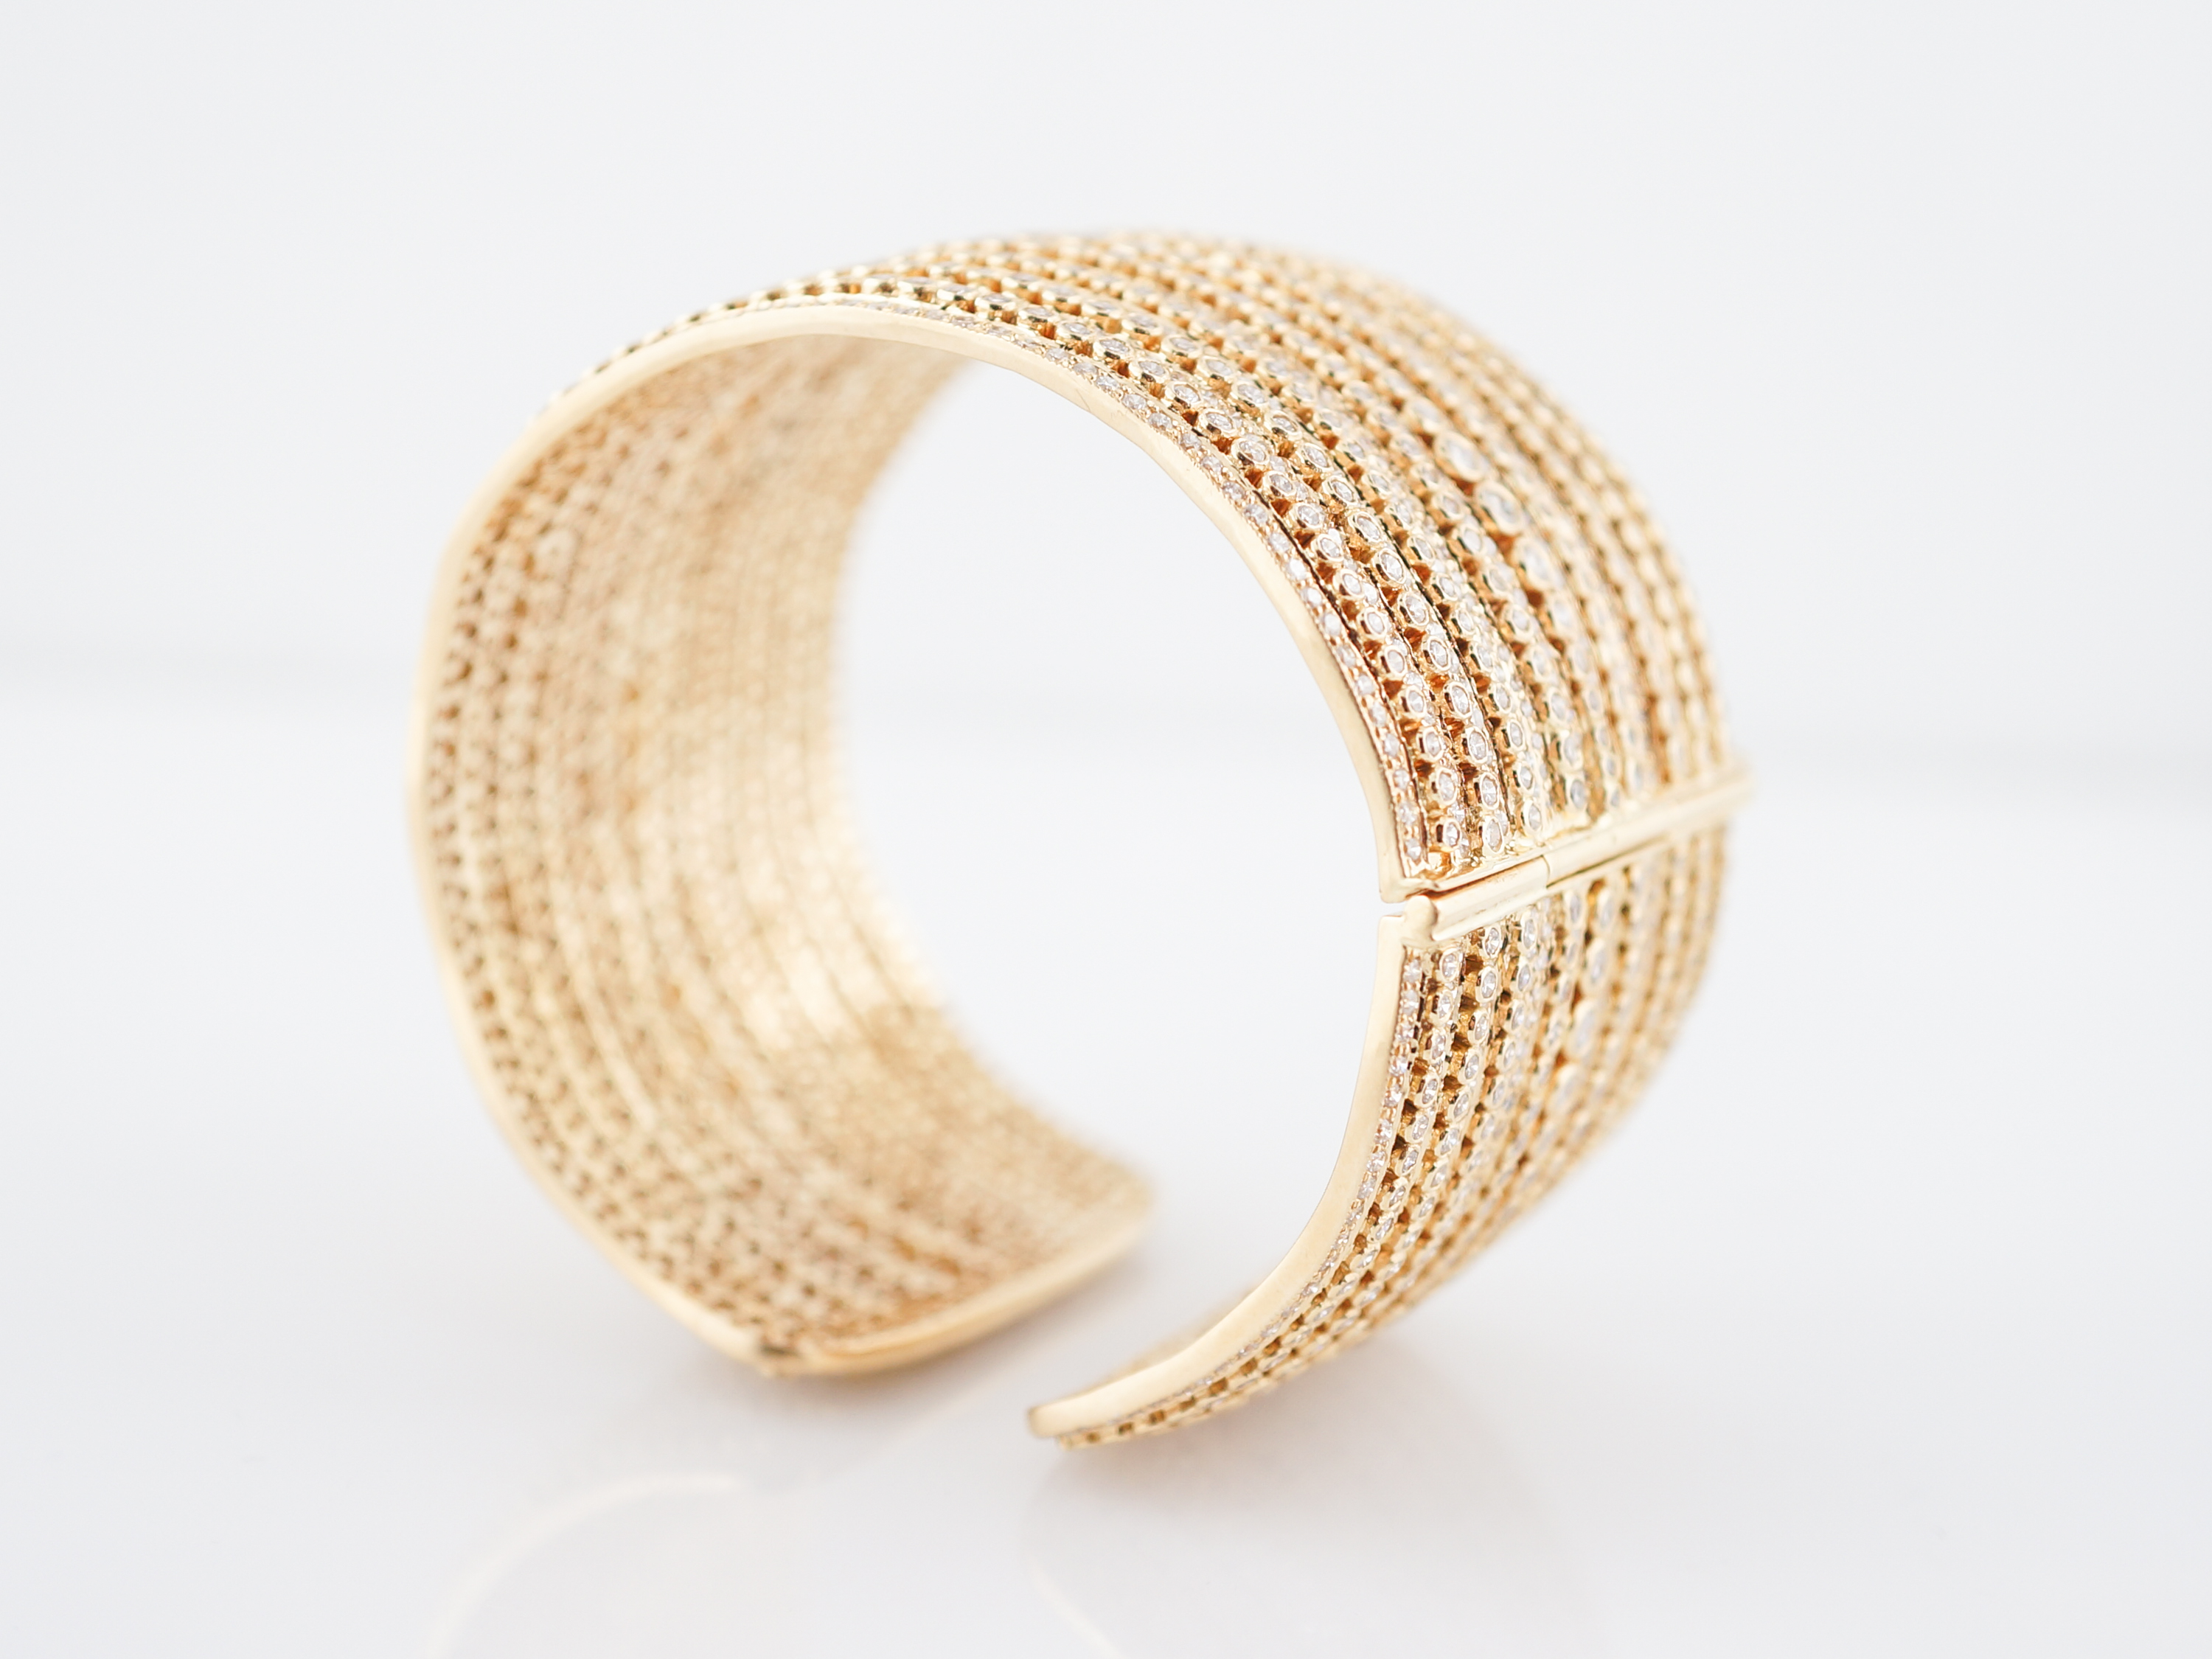 bangle john bark s products brana bracelet bangles johnsbrana brass anticlastic gold inch nu